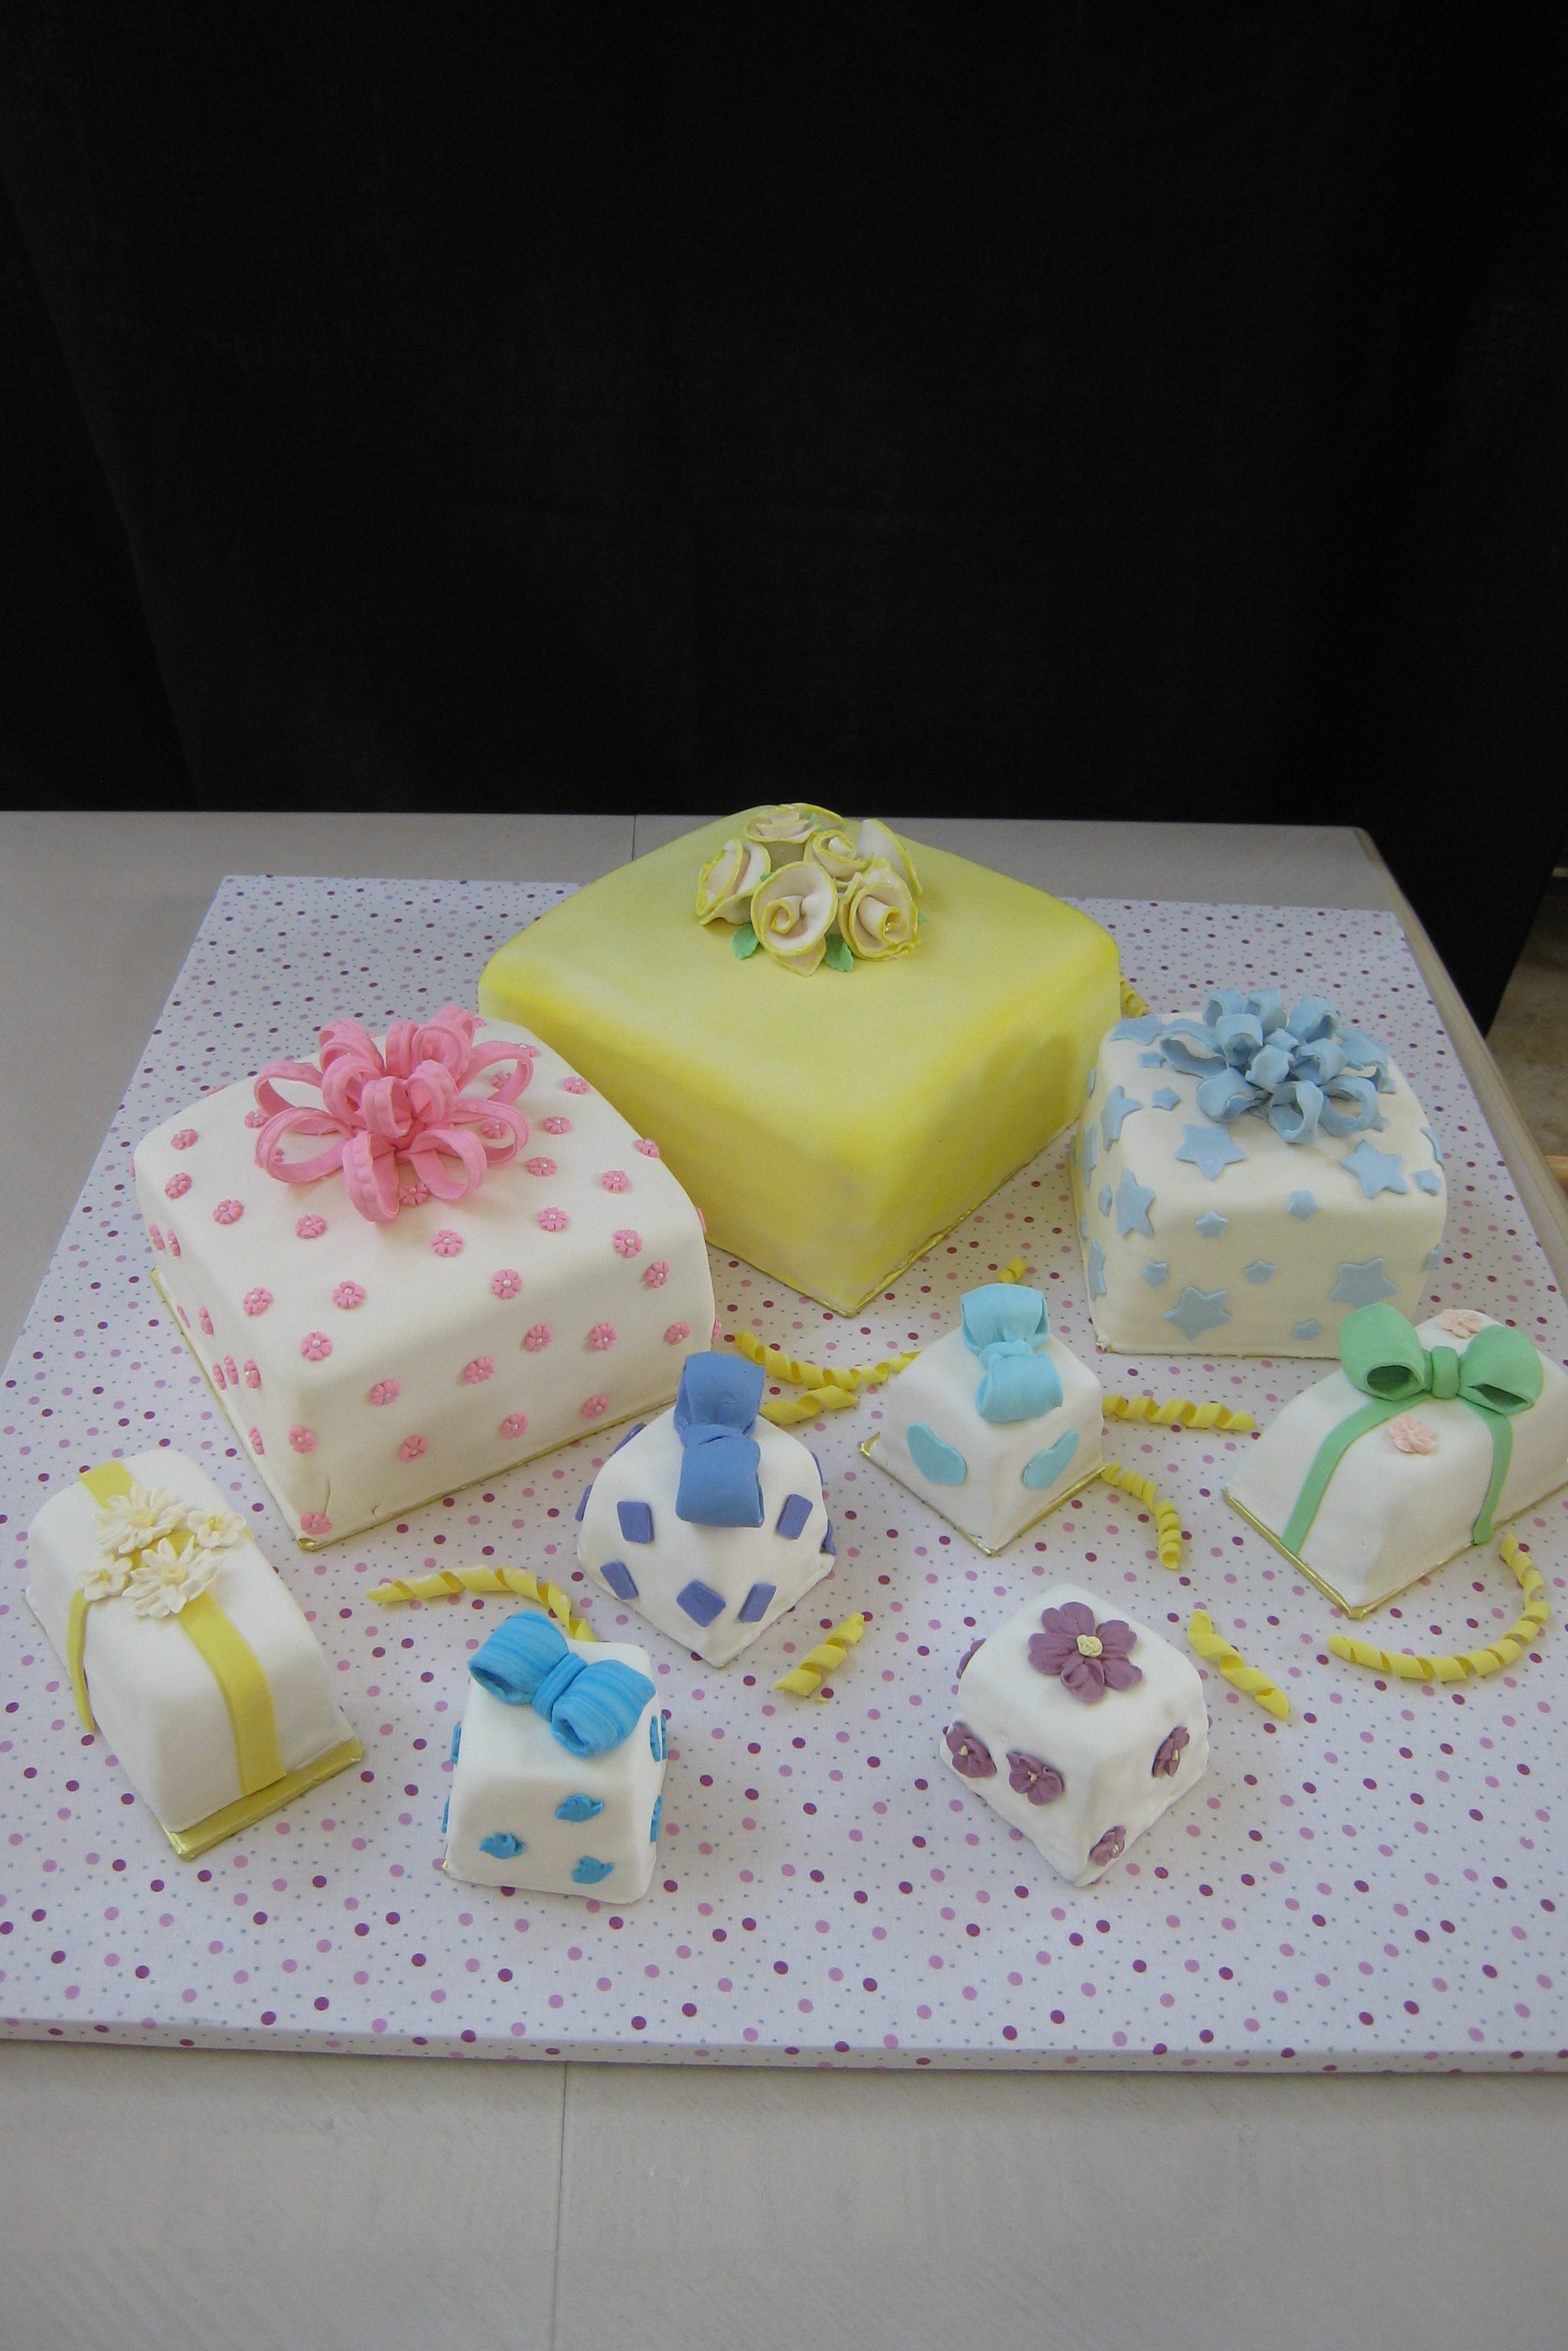 4860 Lots of present cakes - Copy